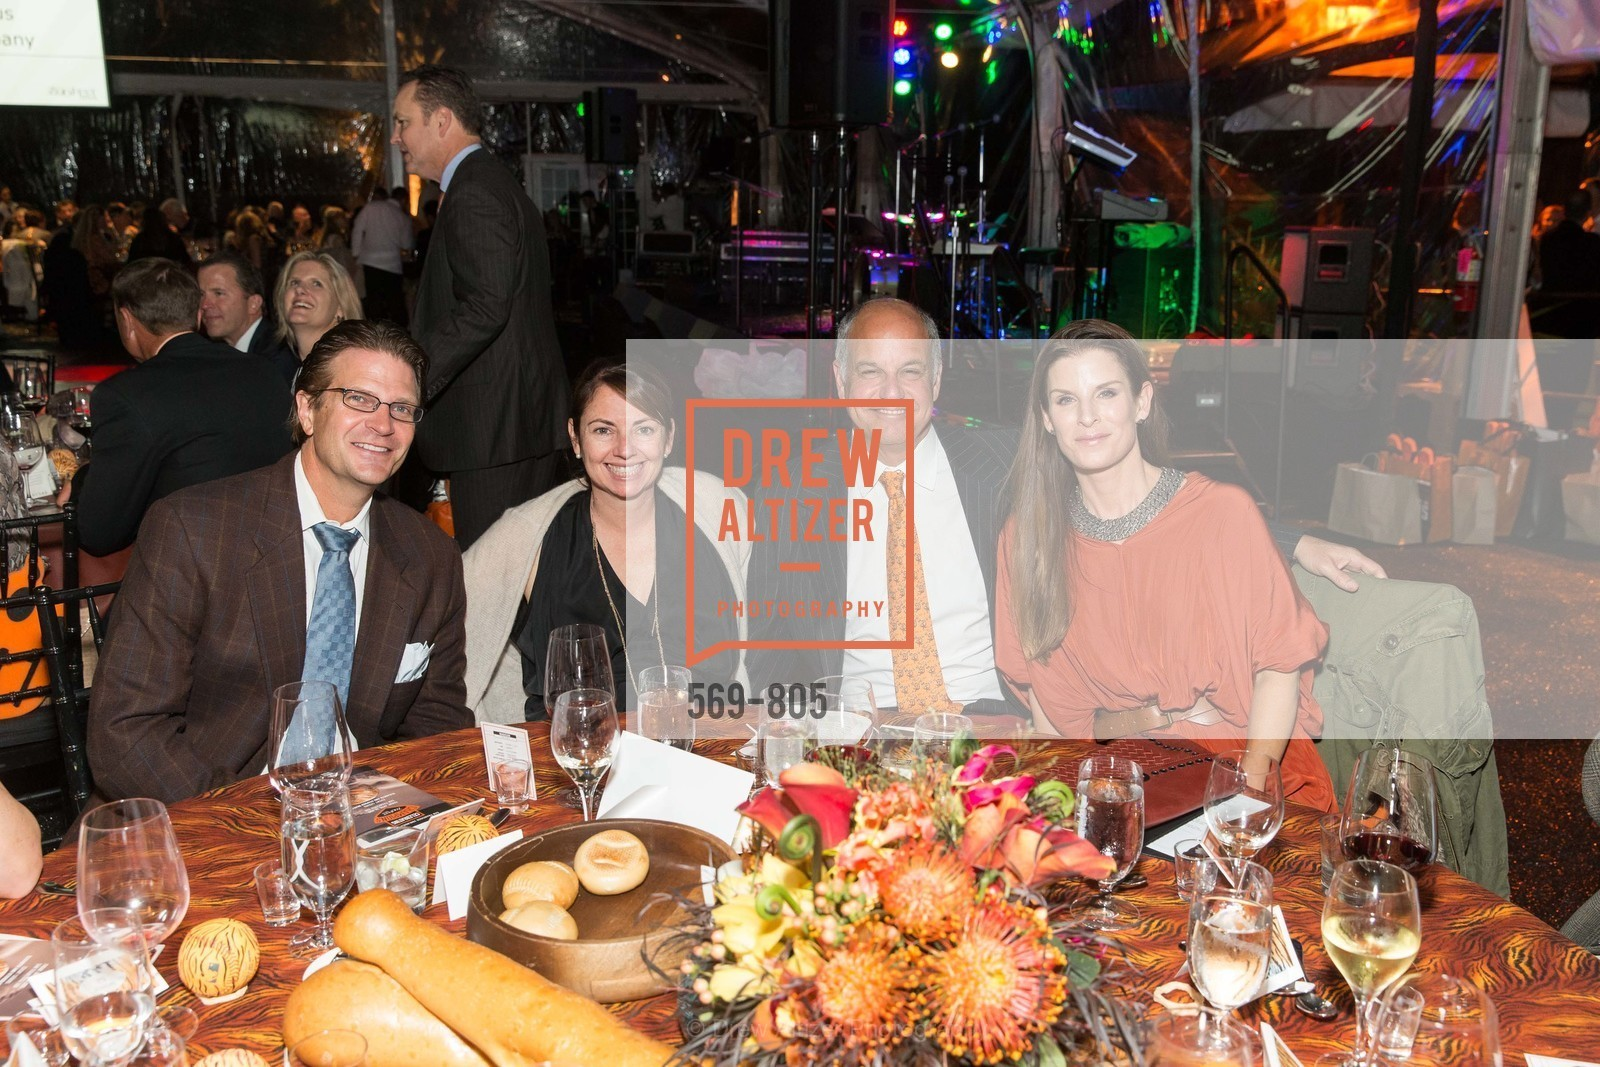 Nick Podell, Leslie Podell, ZOOFEST 2015, US, April 25th, 2015,Drew Altizer, Drew Altizer Photography, full-service agency, private events, San Francisco photographer, photographer california